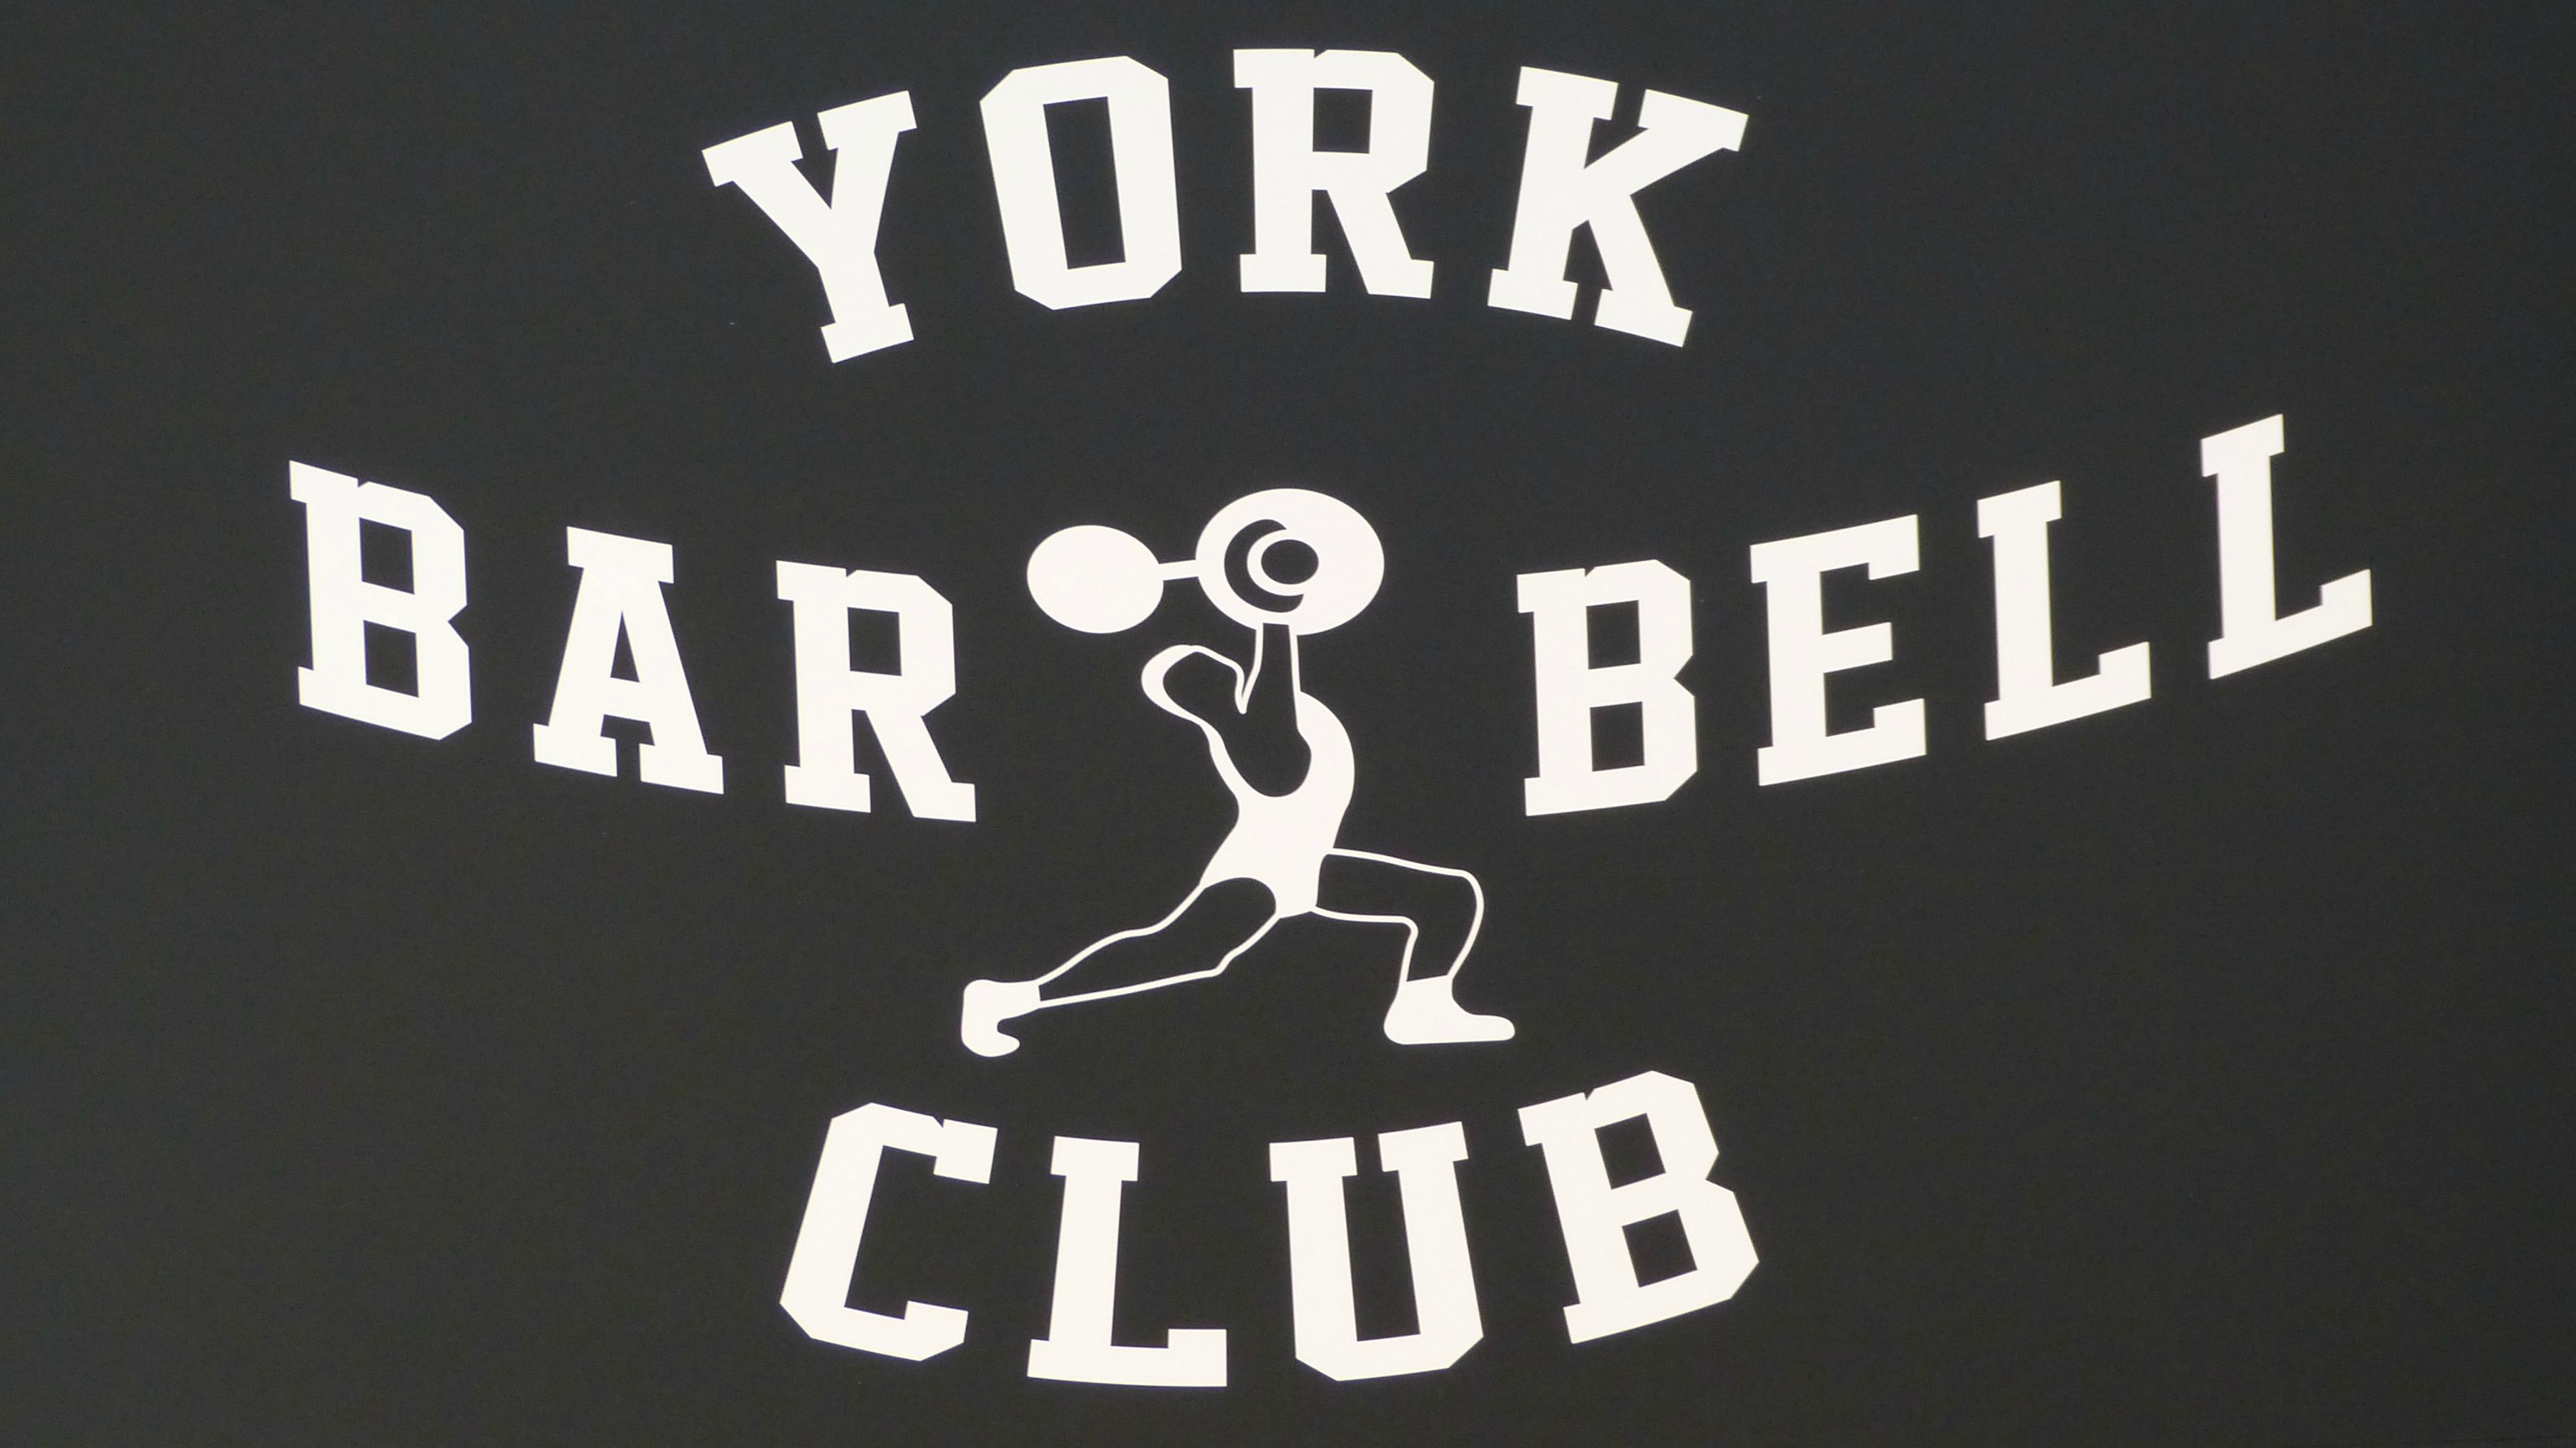 York Barbell System of Training Charts circa 1938